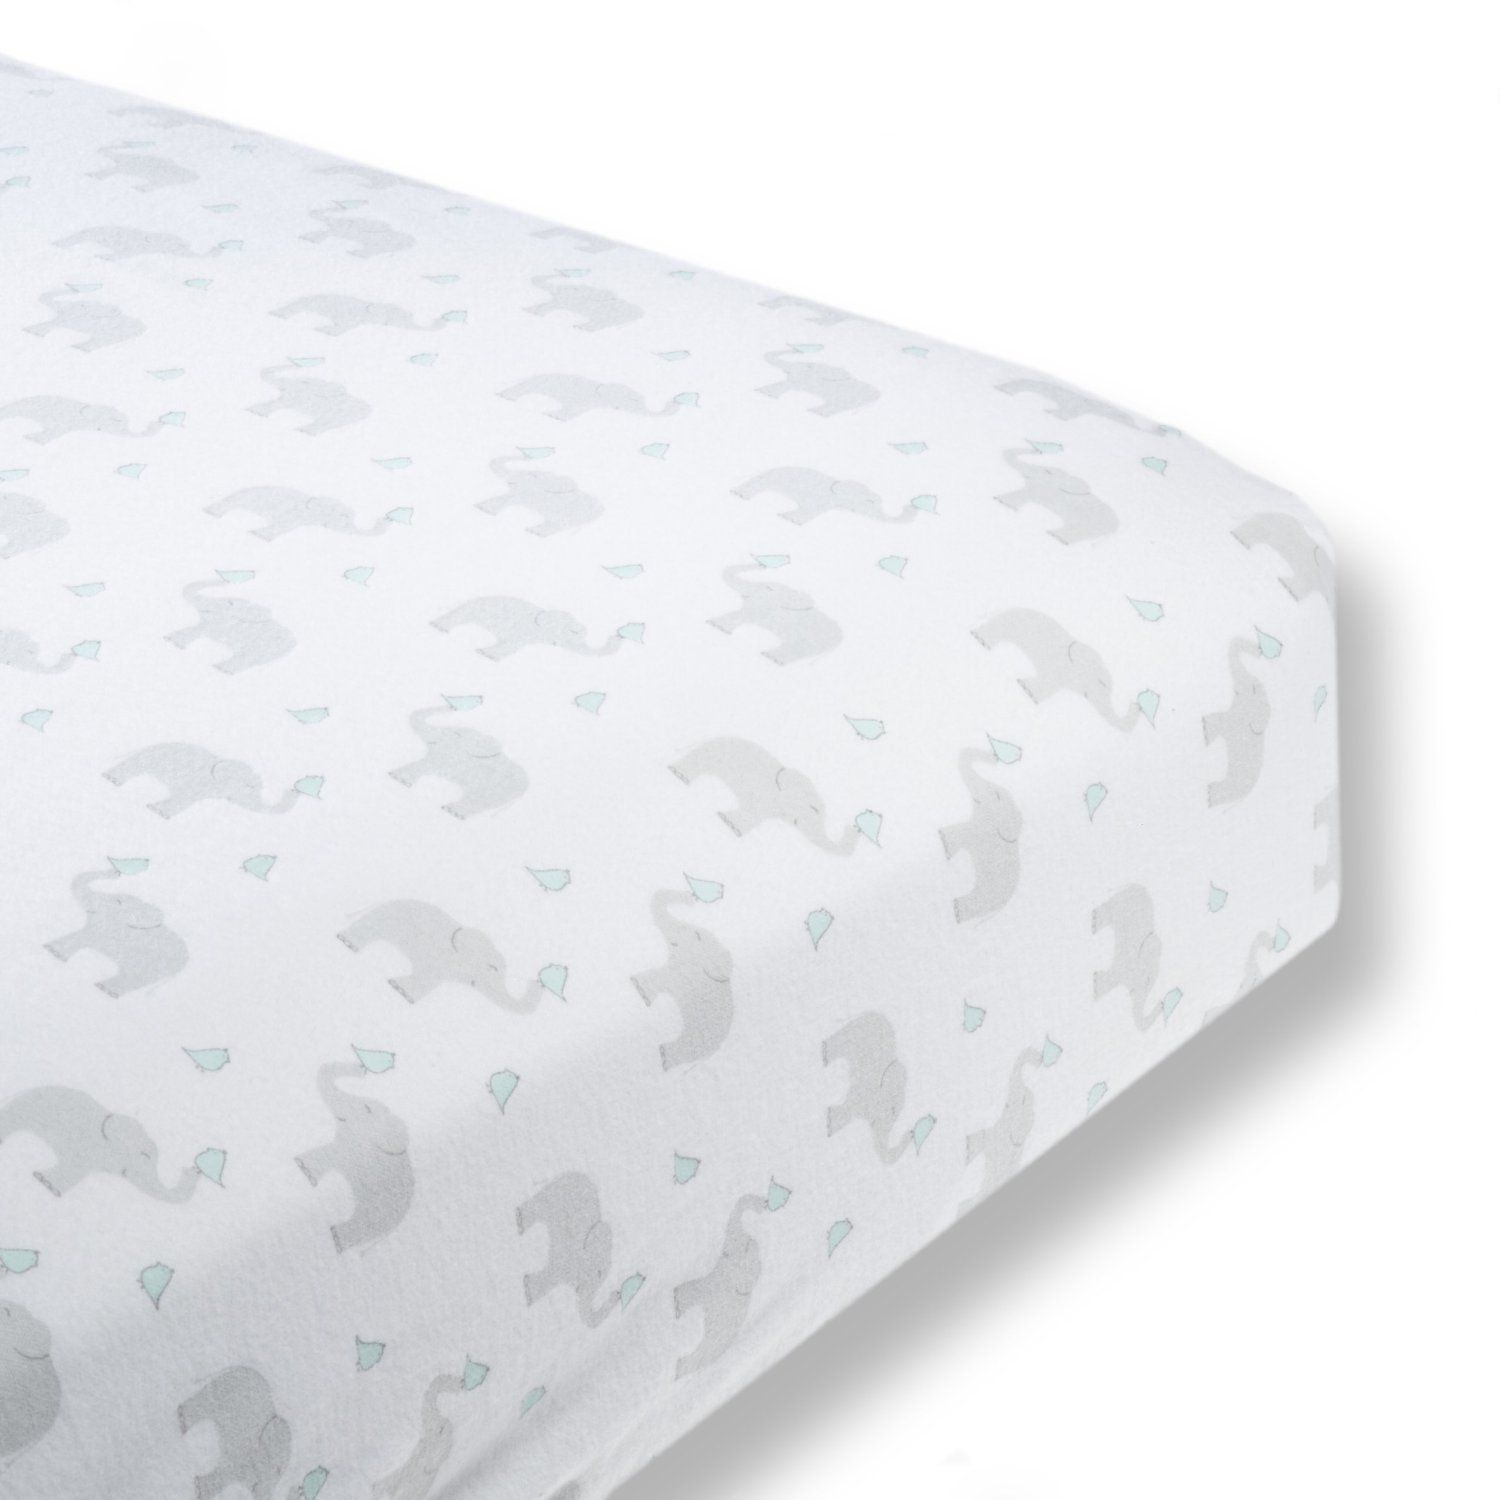 Amazon Com Swaddledesigns Cotton Flannel Fitted Crib